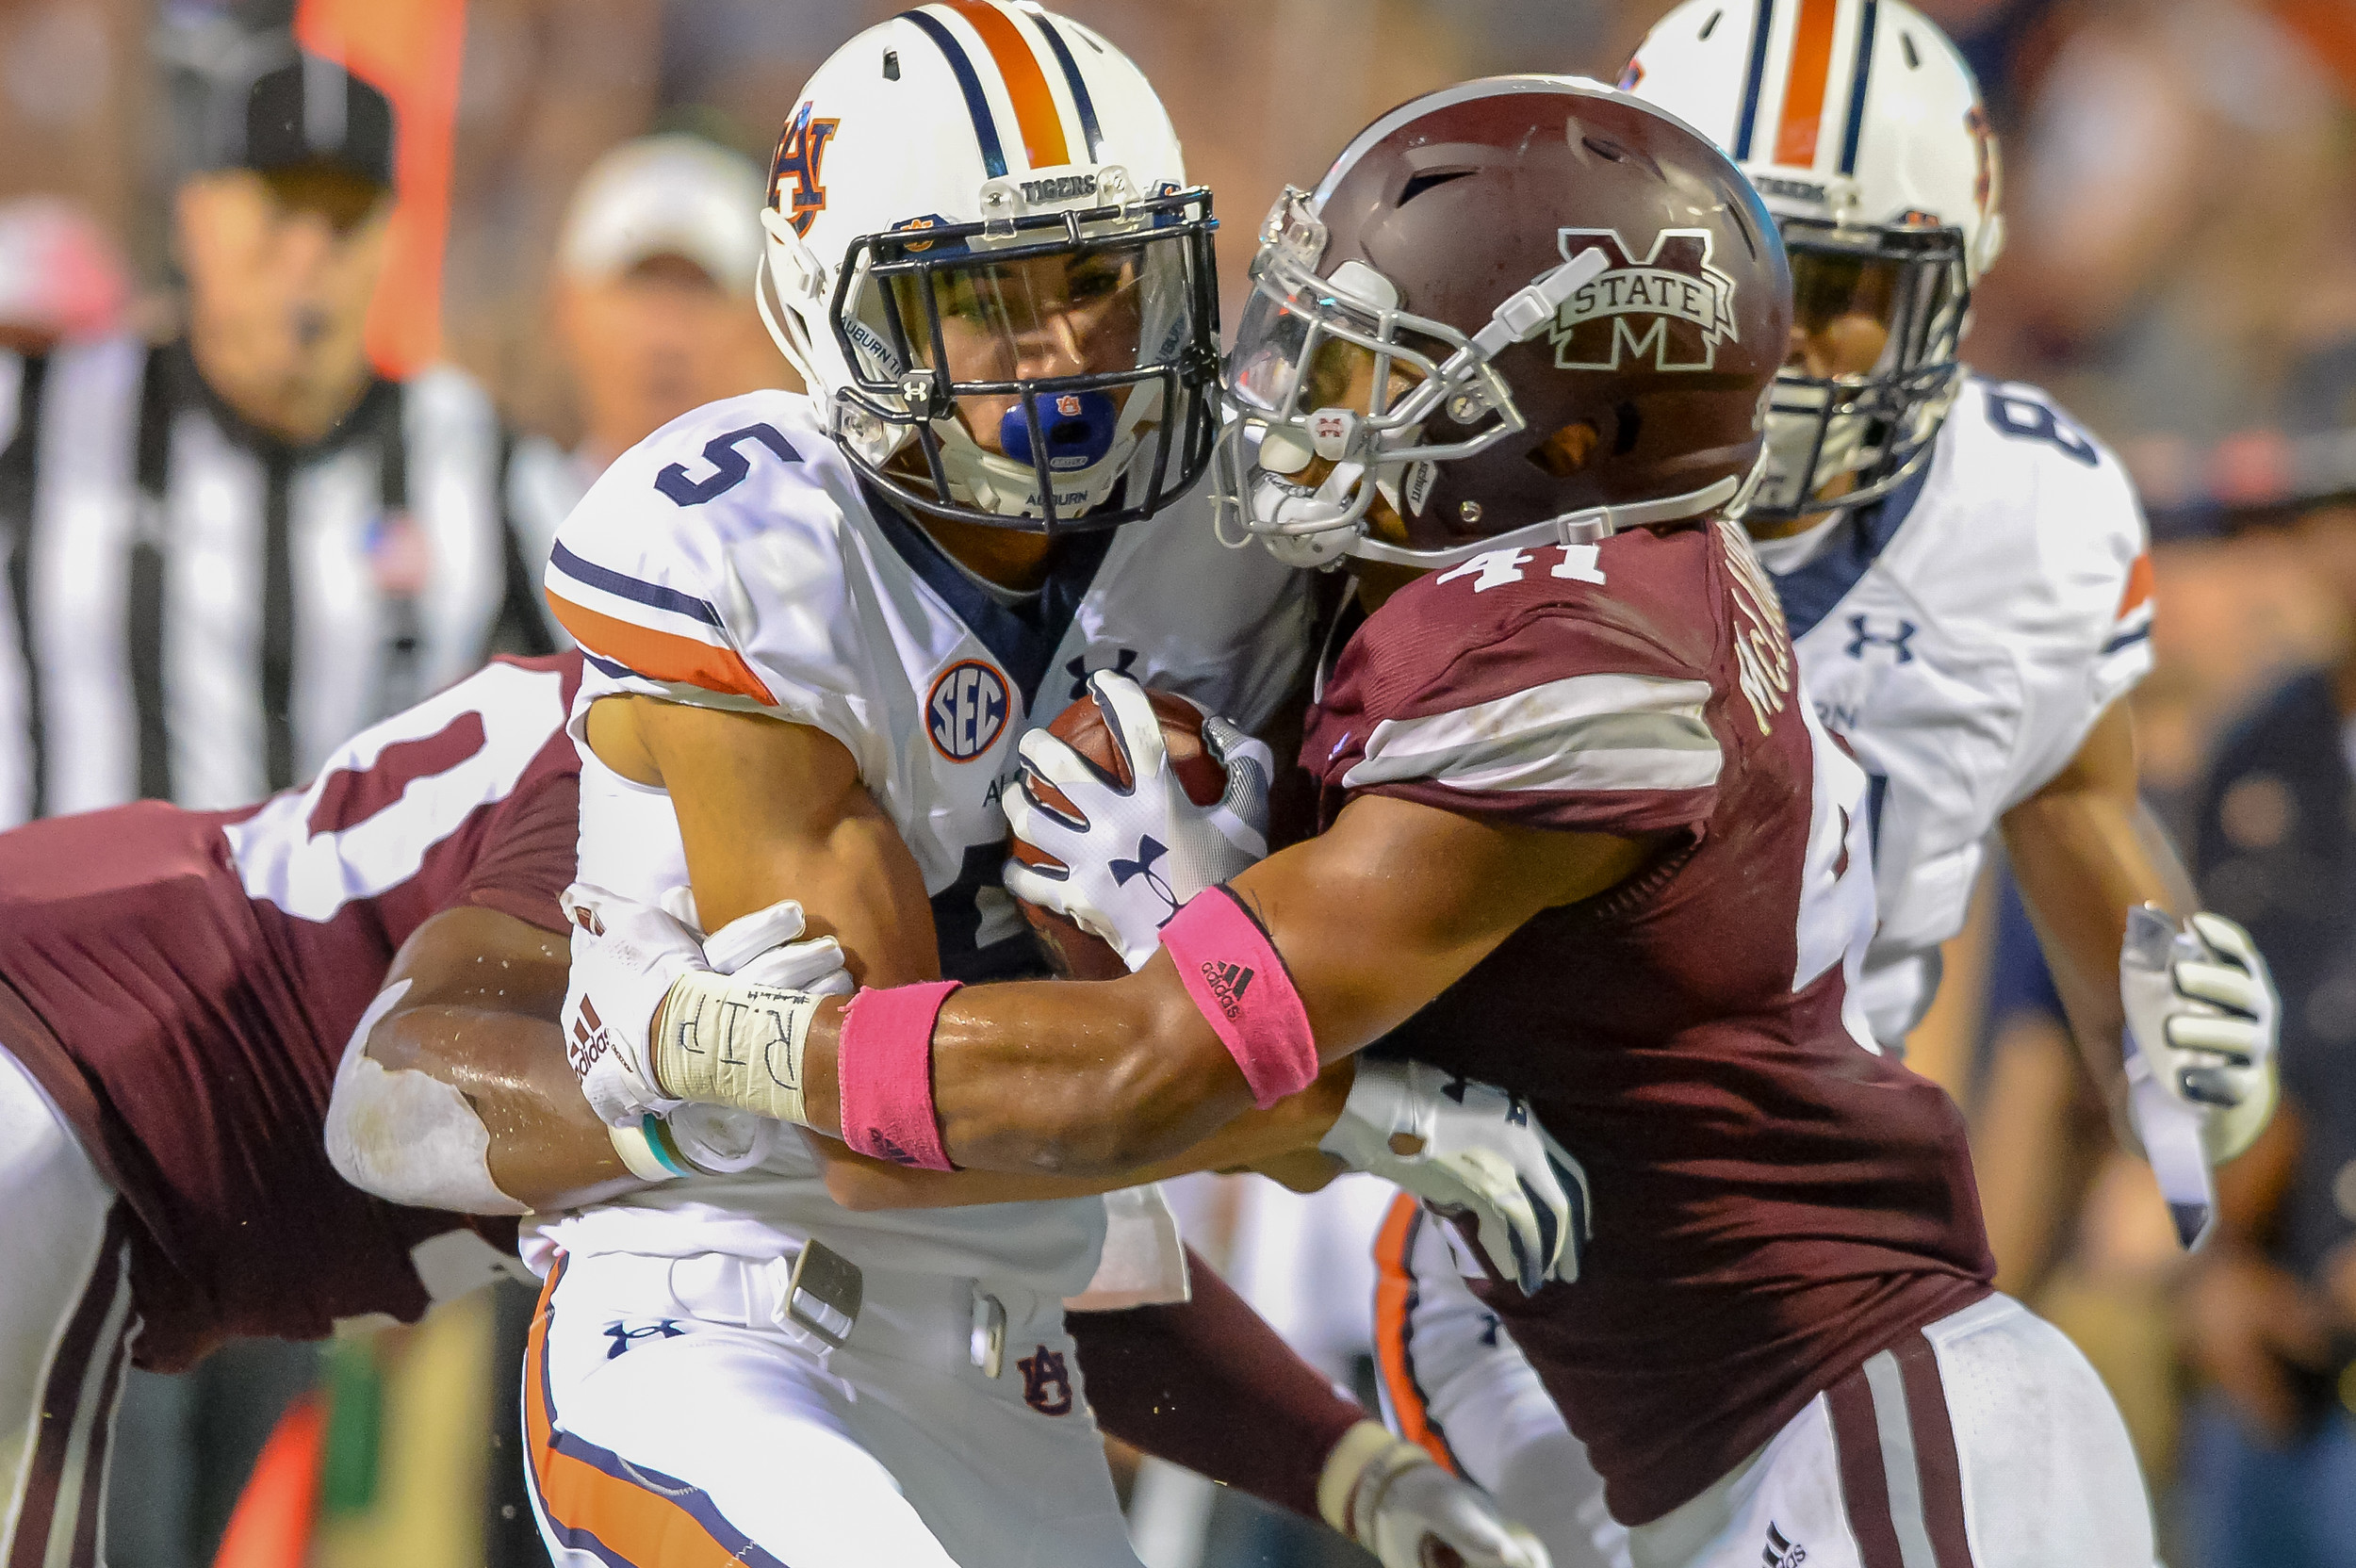 Auburn Tigers wide receiver Anthony Schwartz (5) is tackled by Mississippi State Bulldogs safety Mark McLaurin (41) during the second half of Saturday's game, at Davis Wade Stadium in Starkville, MS. Daily Mountain Eagle -  Jeff Johnsey